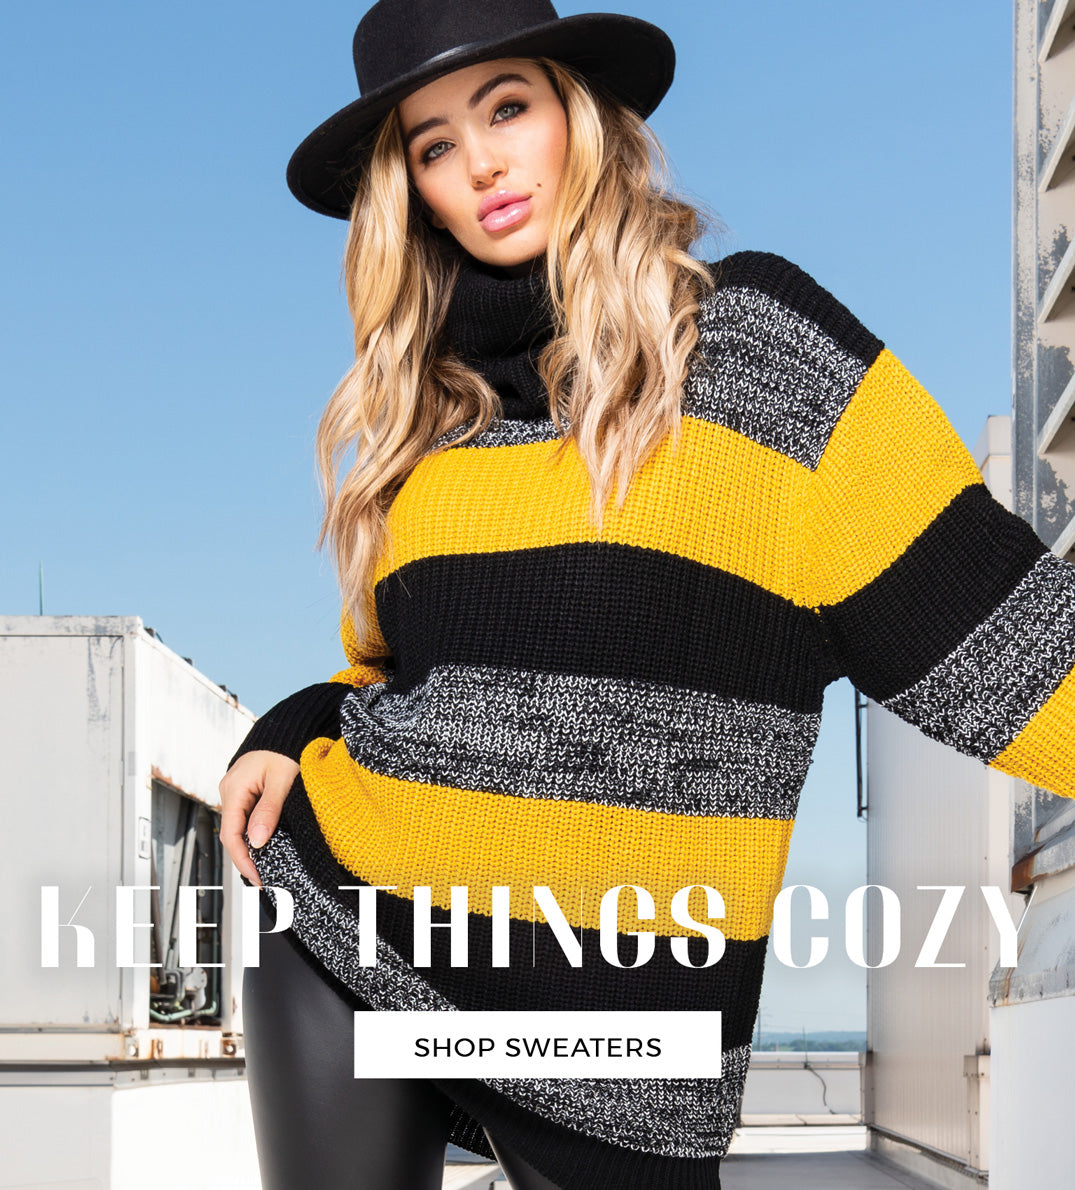 Keep Things Cozy - Shop Sweaters